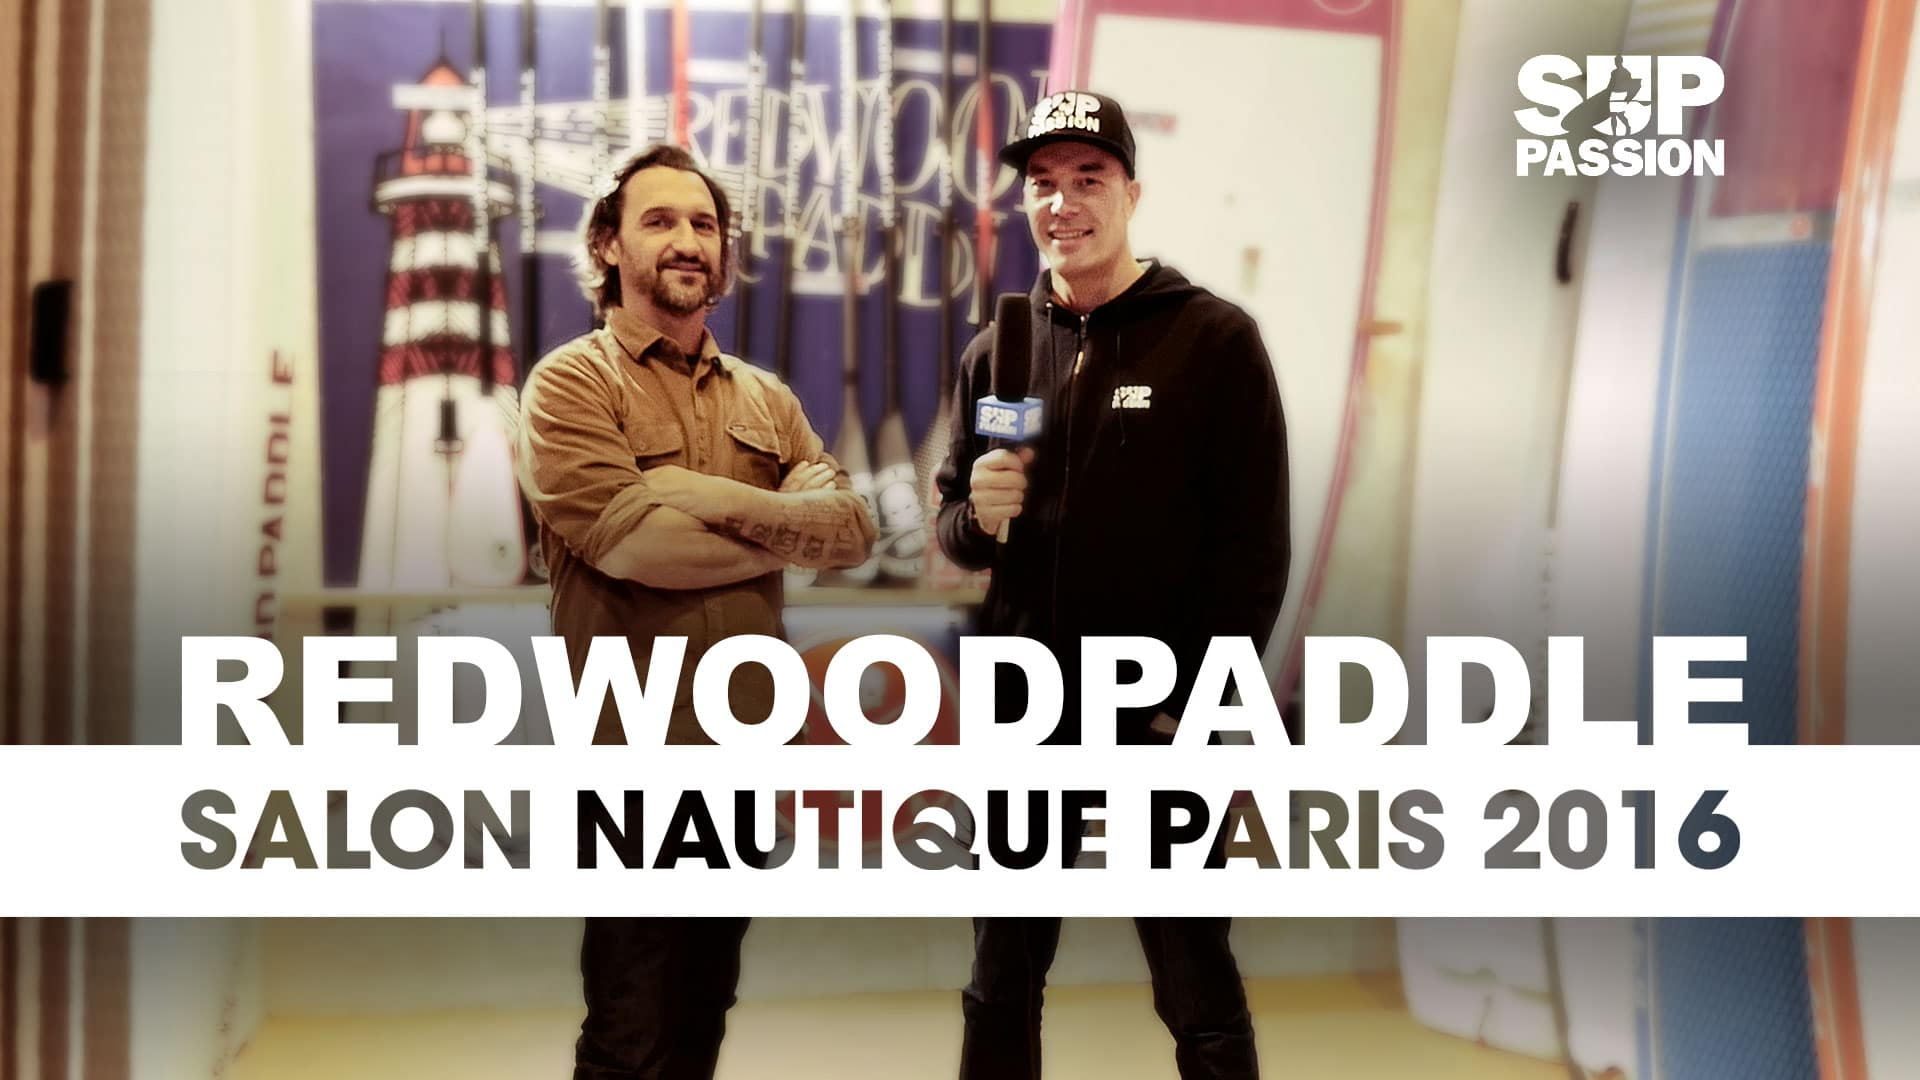 Stand up paddle redwoodpaddle au salon nautique de paris 2016 for Salon nautisme paris